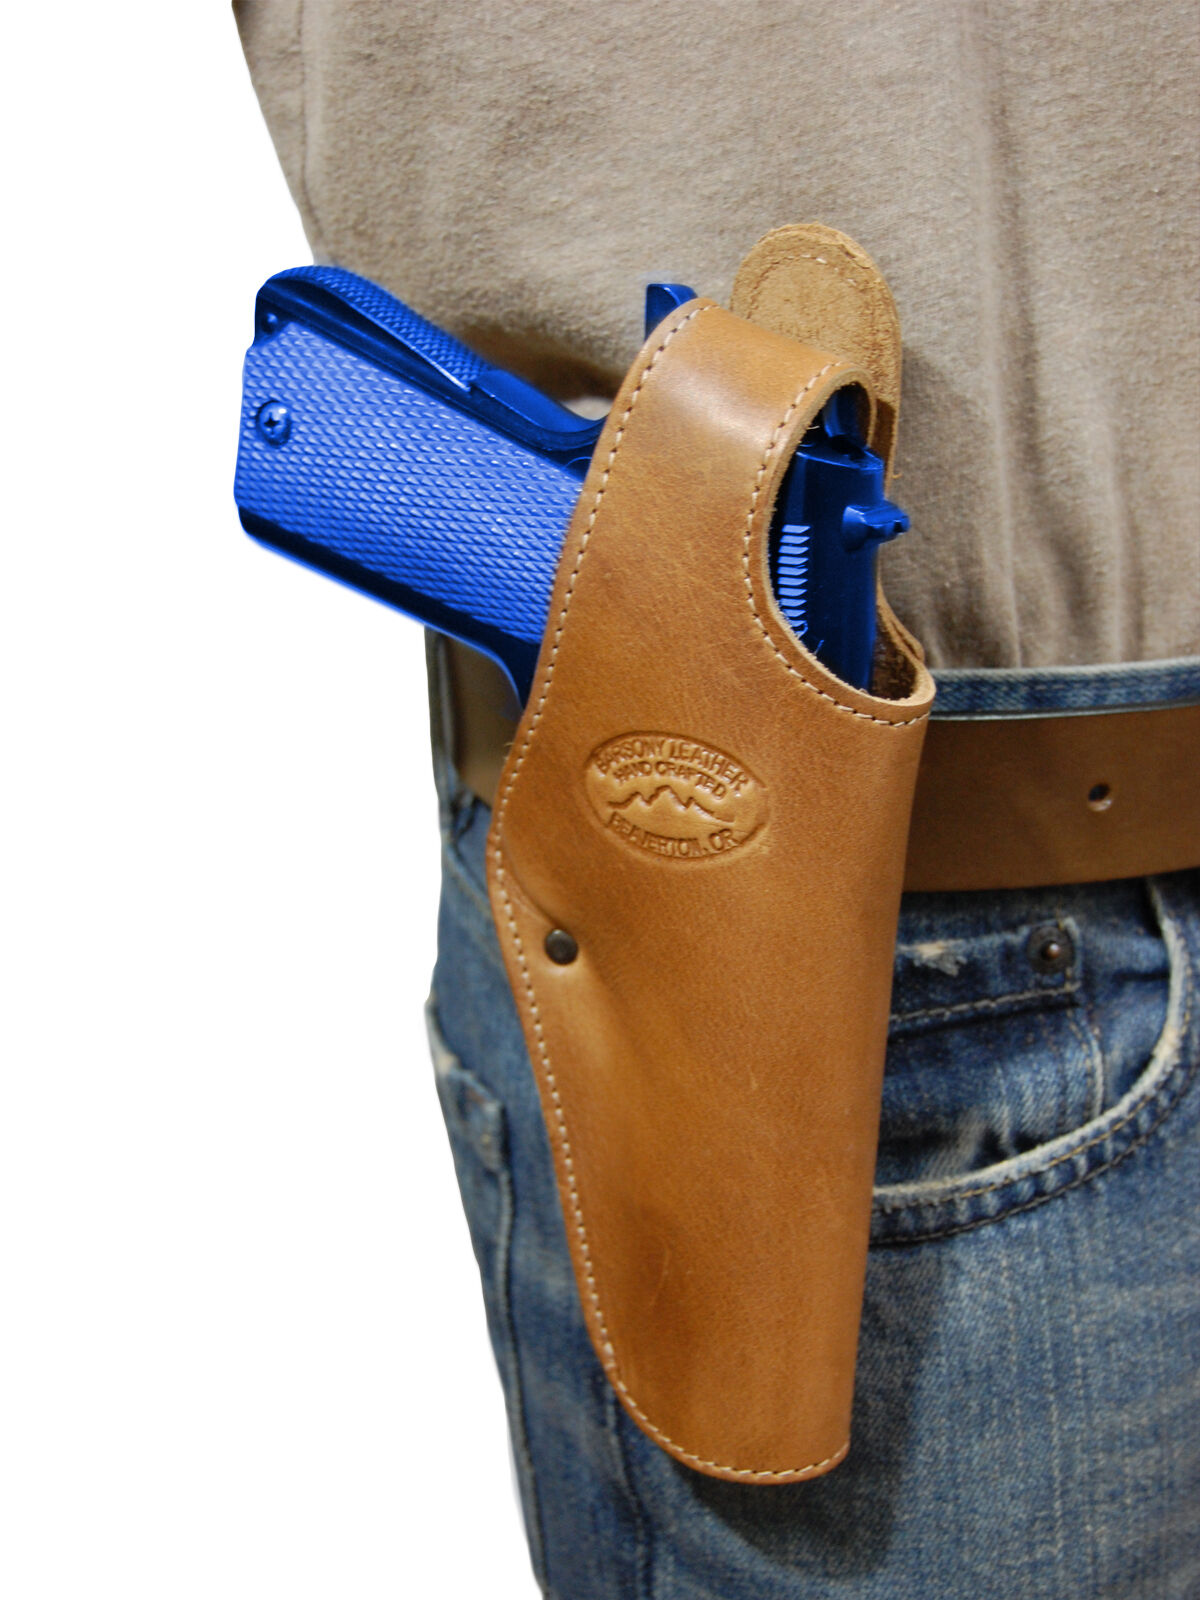 New Barsony Saddle Tan Leather Belt OWB Holster for Taurus Full Size 9mm 40 45